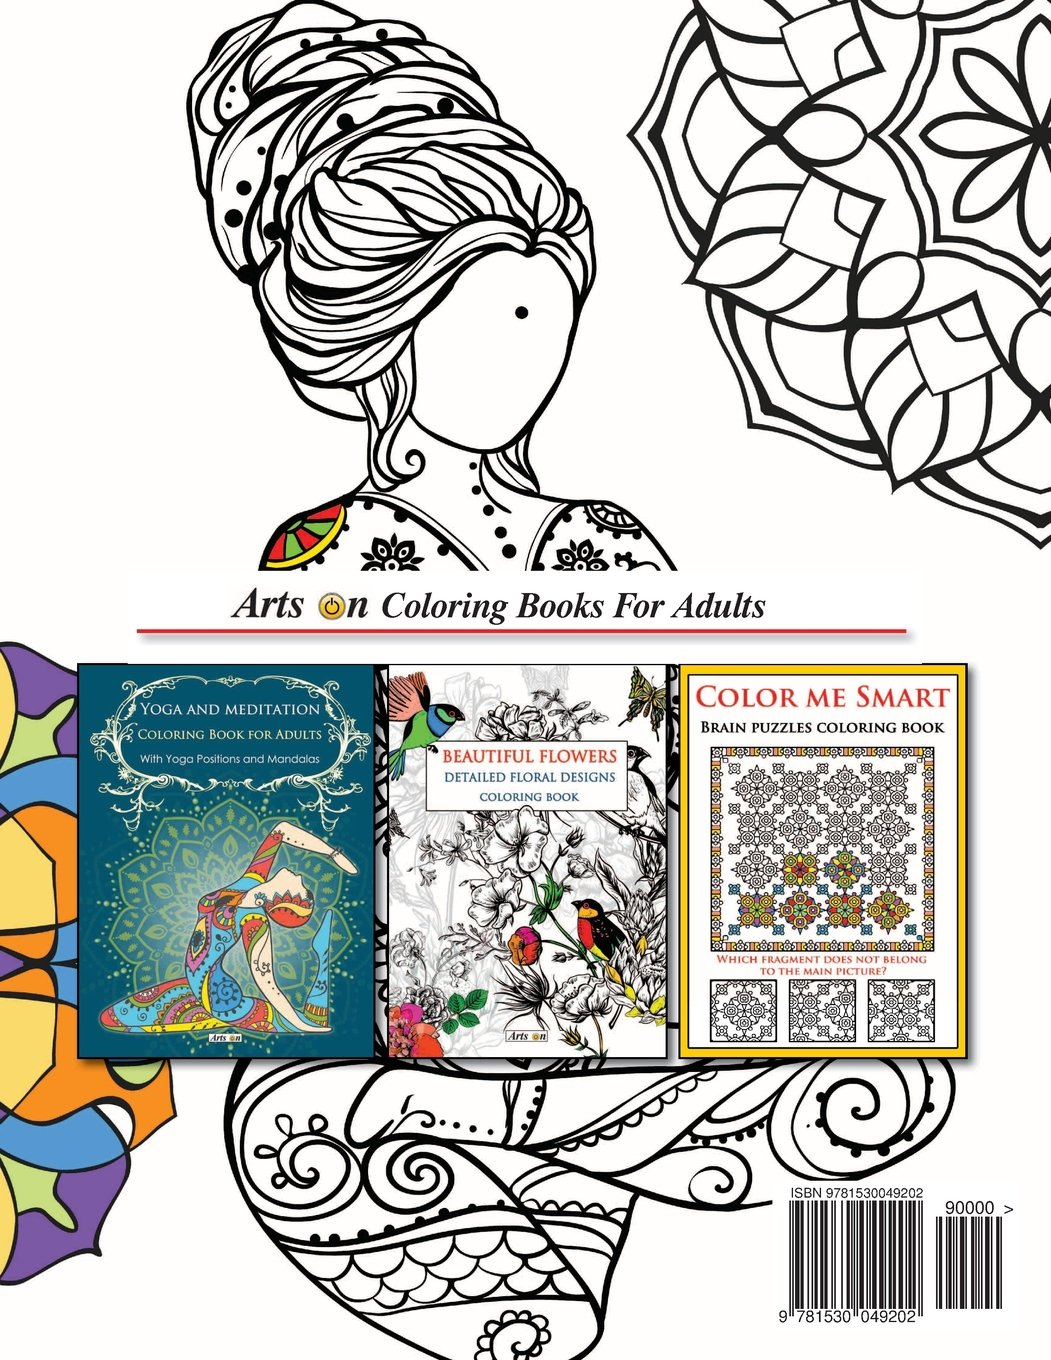 The human brain coloring book diamond - Buy Yoga And Meditation Coloring Book For Adults With Yoga Poses And Mandalas Volume 1 Arts On Coloring Books Book Online At Low Prices In India Yoga